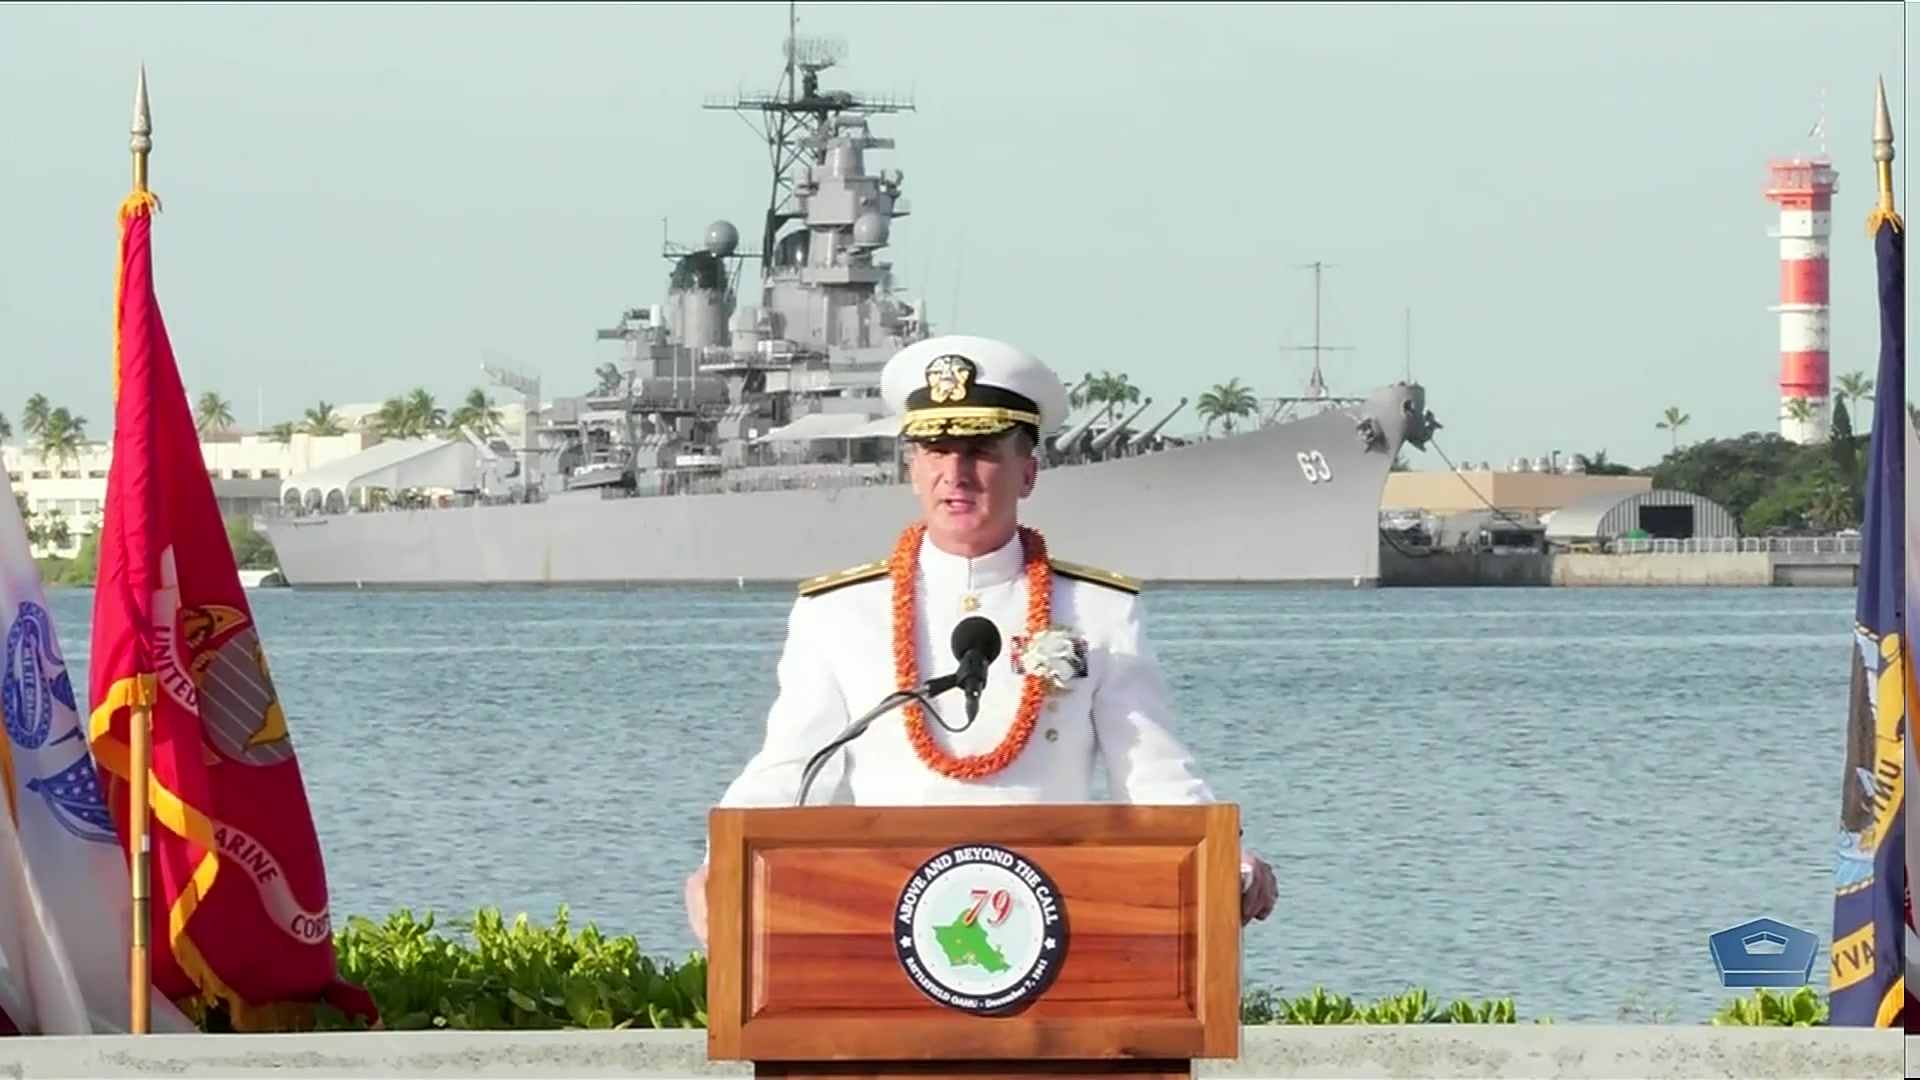 A sailor speaks at a lectern on a waterfront, with a ship moored in the background.